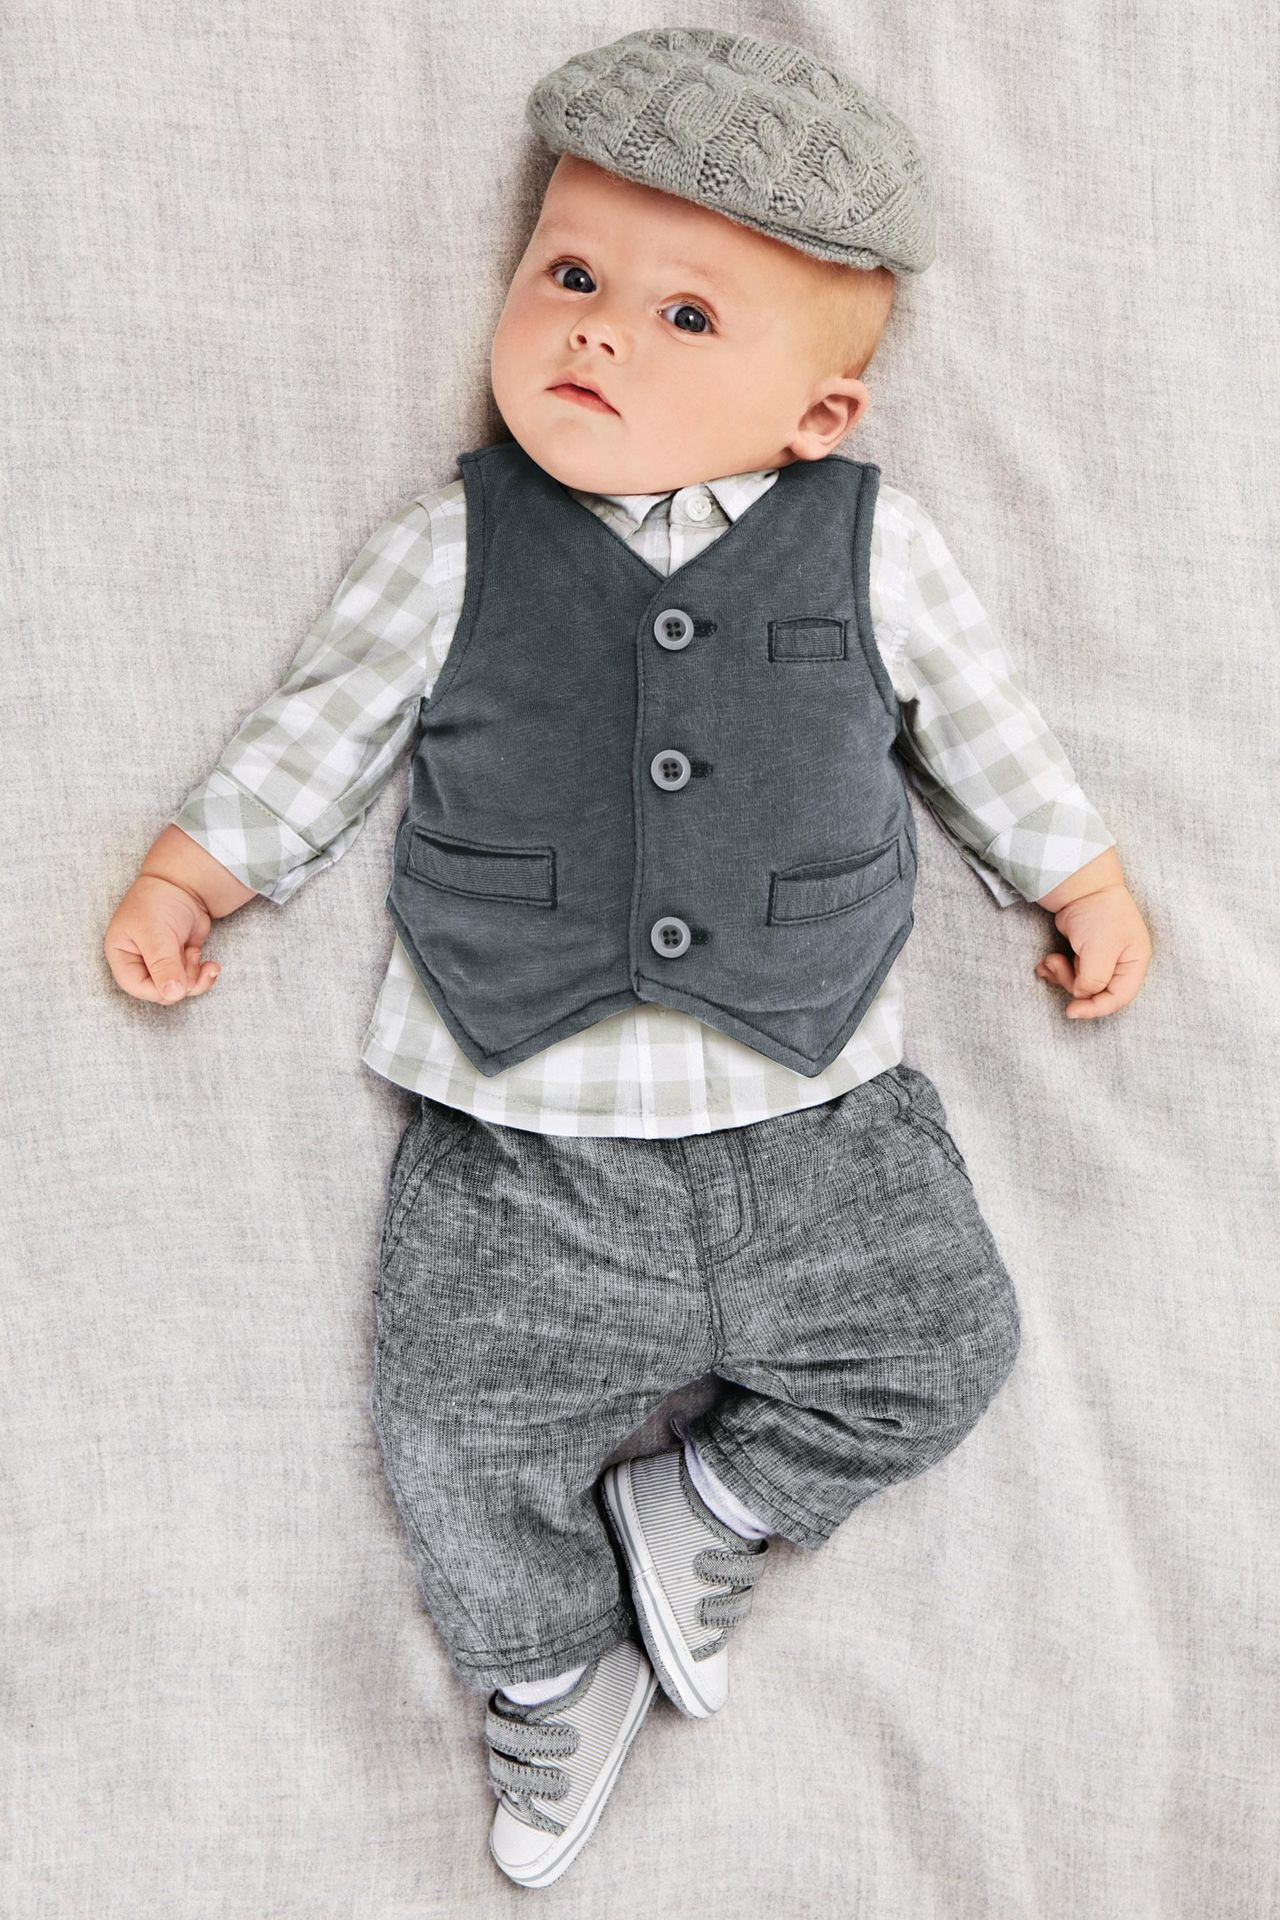 4d66168a94a82 2019 Baby Boy Clothing Set Spring Gentleman Suit Set Long Sleeved Plaid  Shirt Vest Pant Set 2016 Clothes Set For Boys Three Pieces Suits From  Abby517